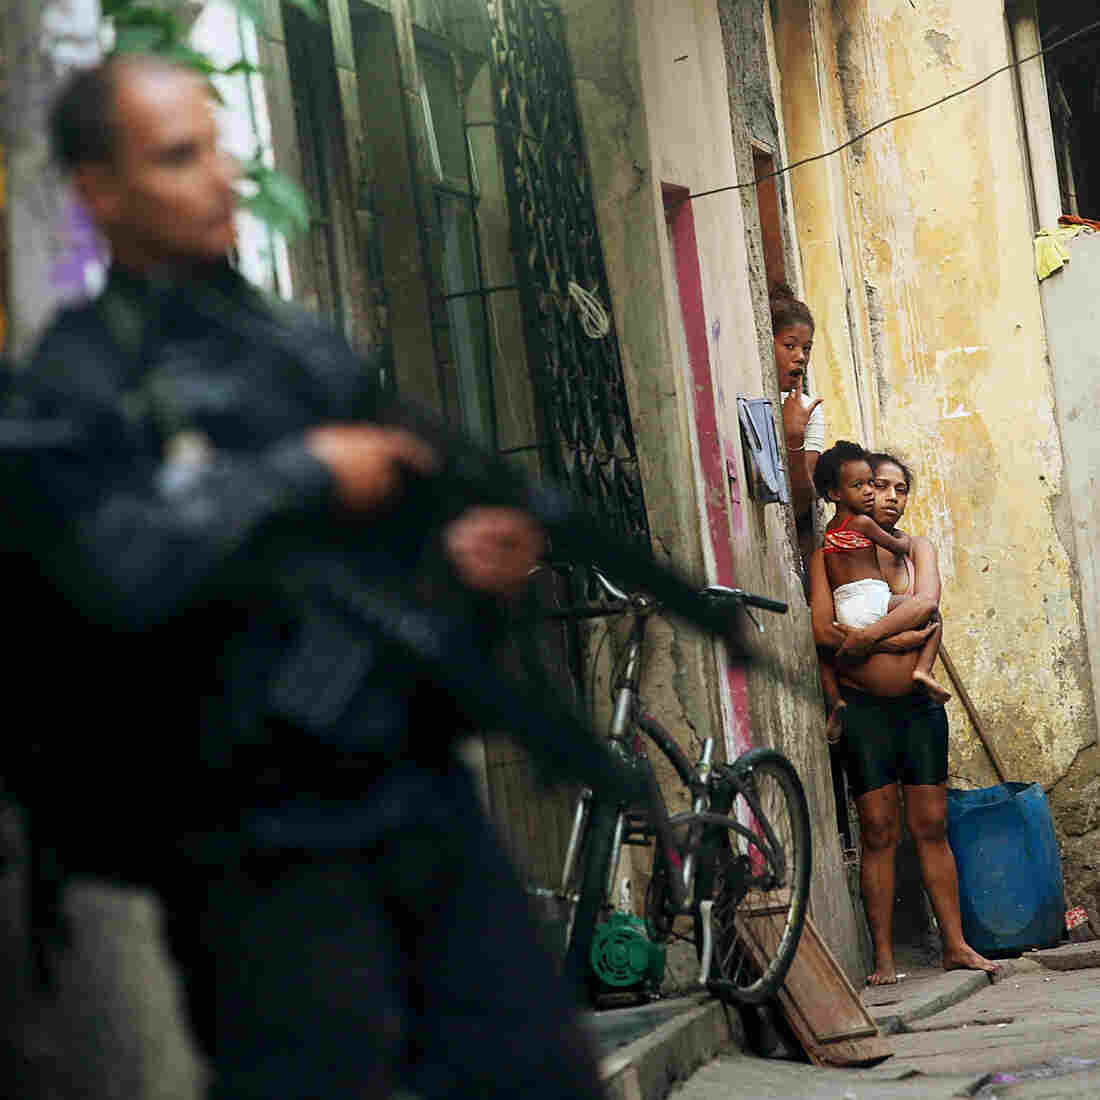 In Brazil, Race Is A Matter Of Life And Violent Death